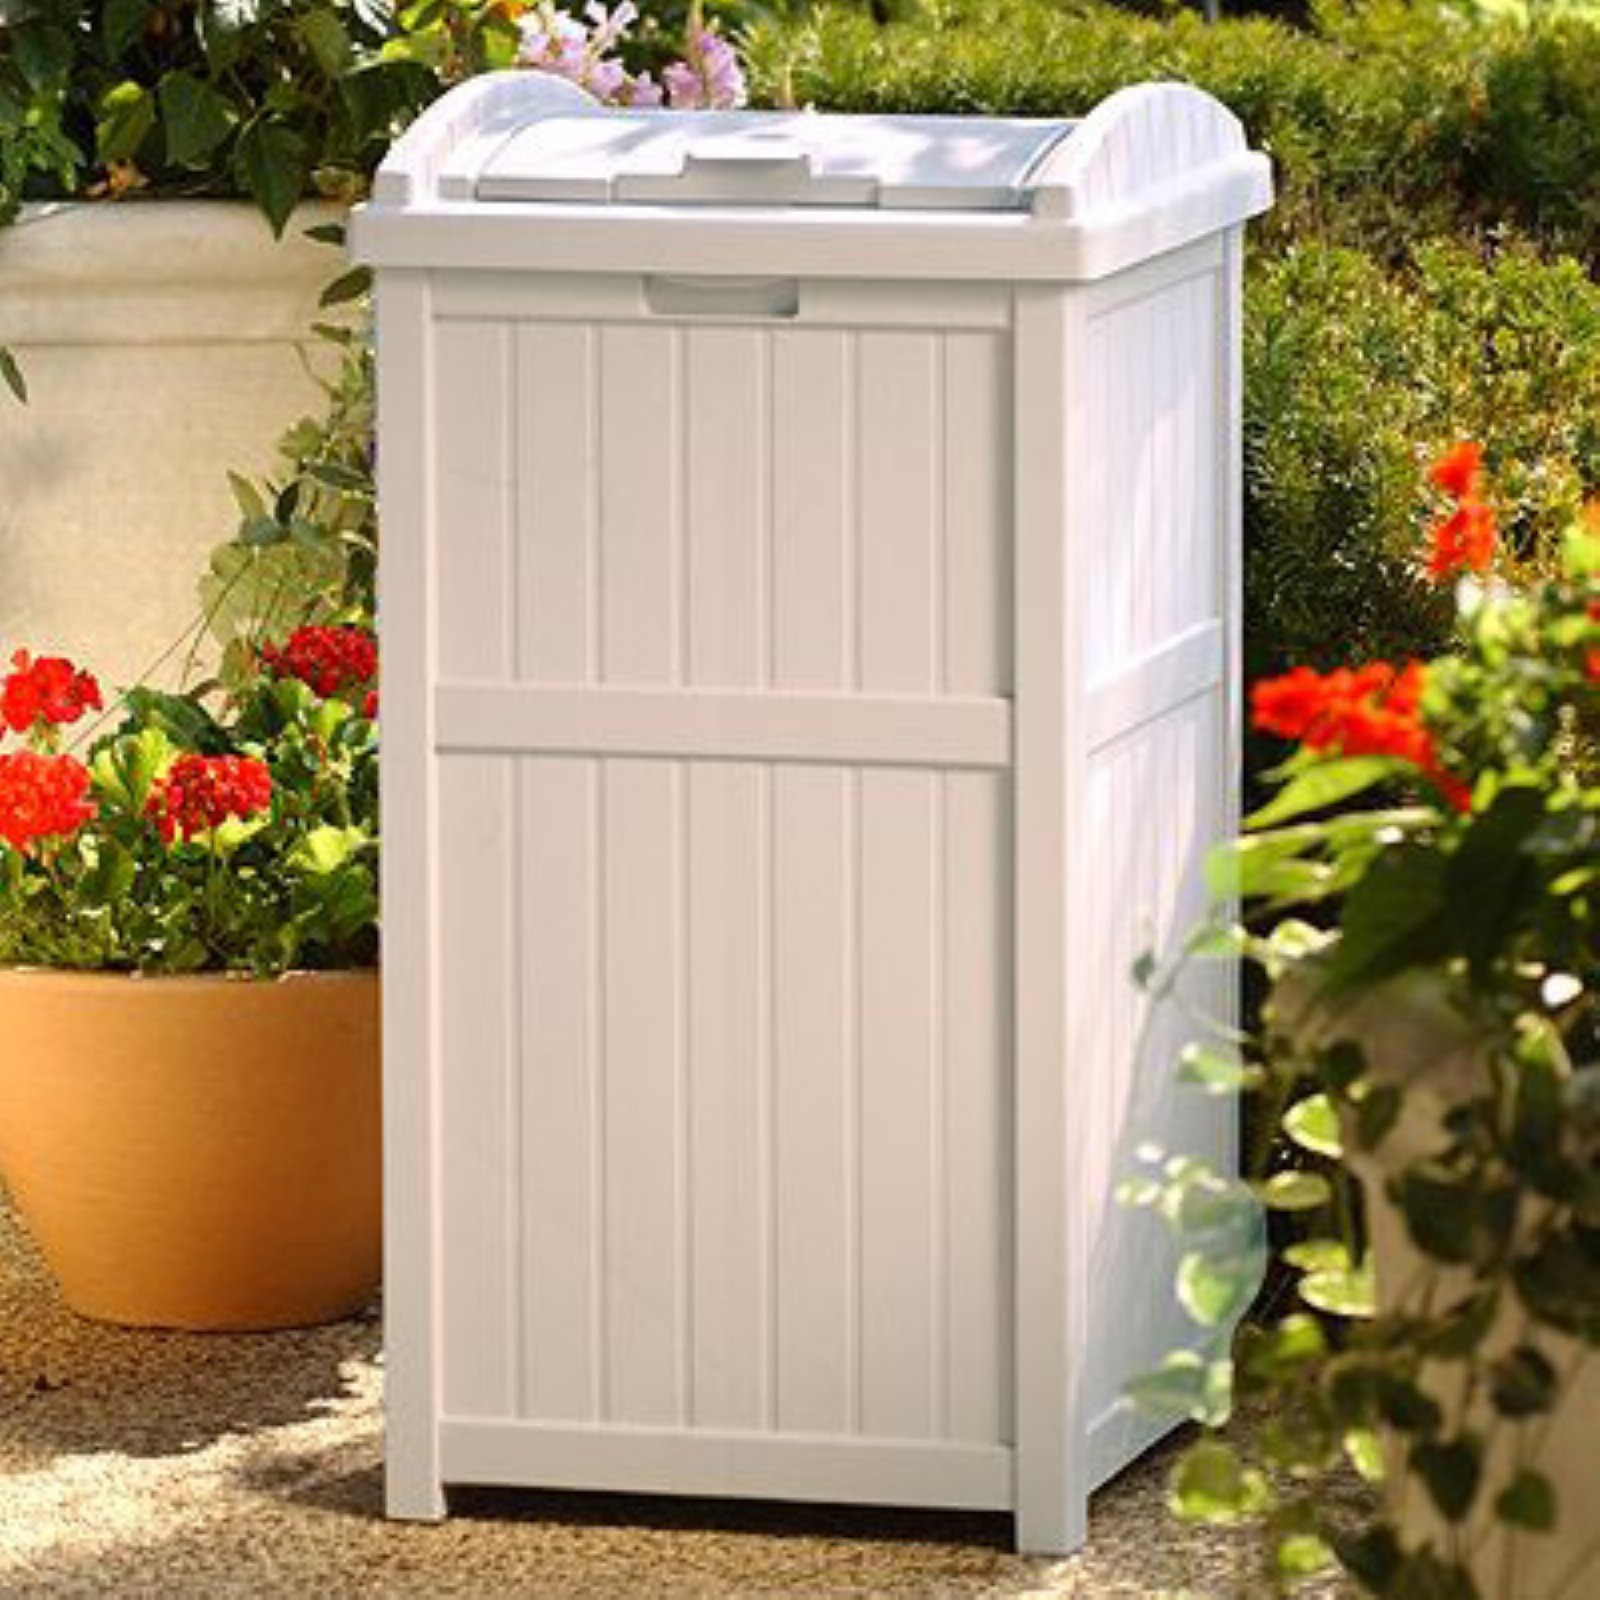 Suncast Outdoor Trash Can Hideaway Patio Deck Garbage Container Bin With Lid